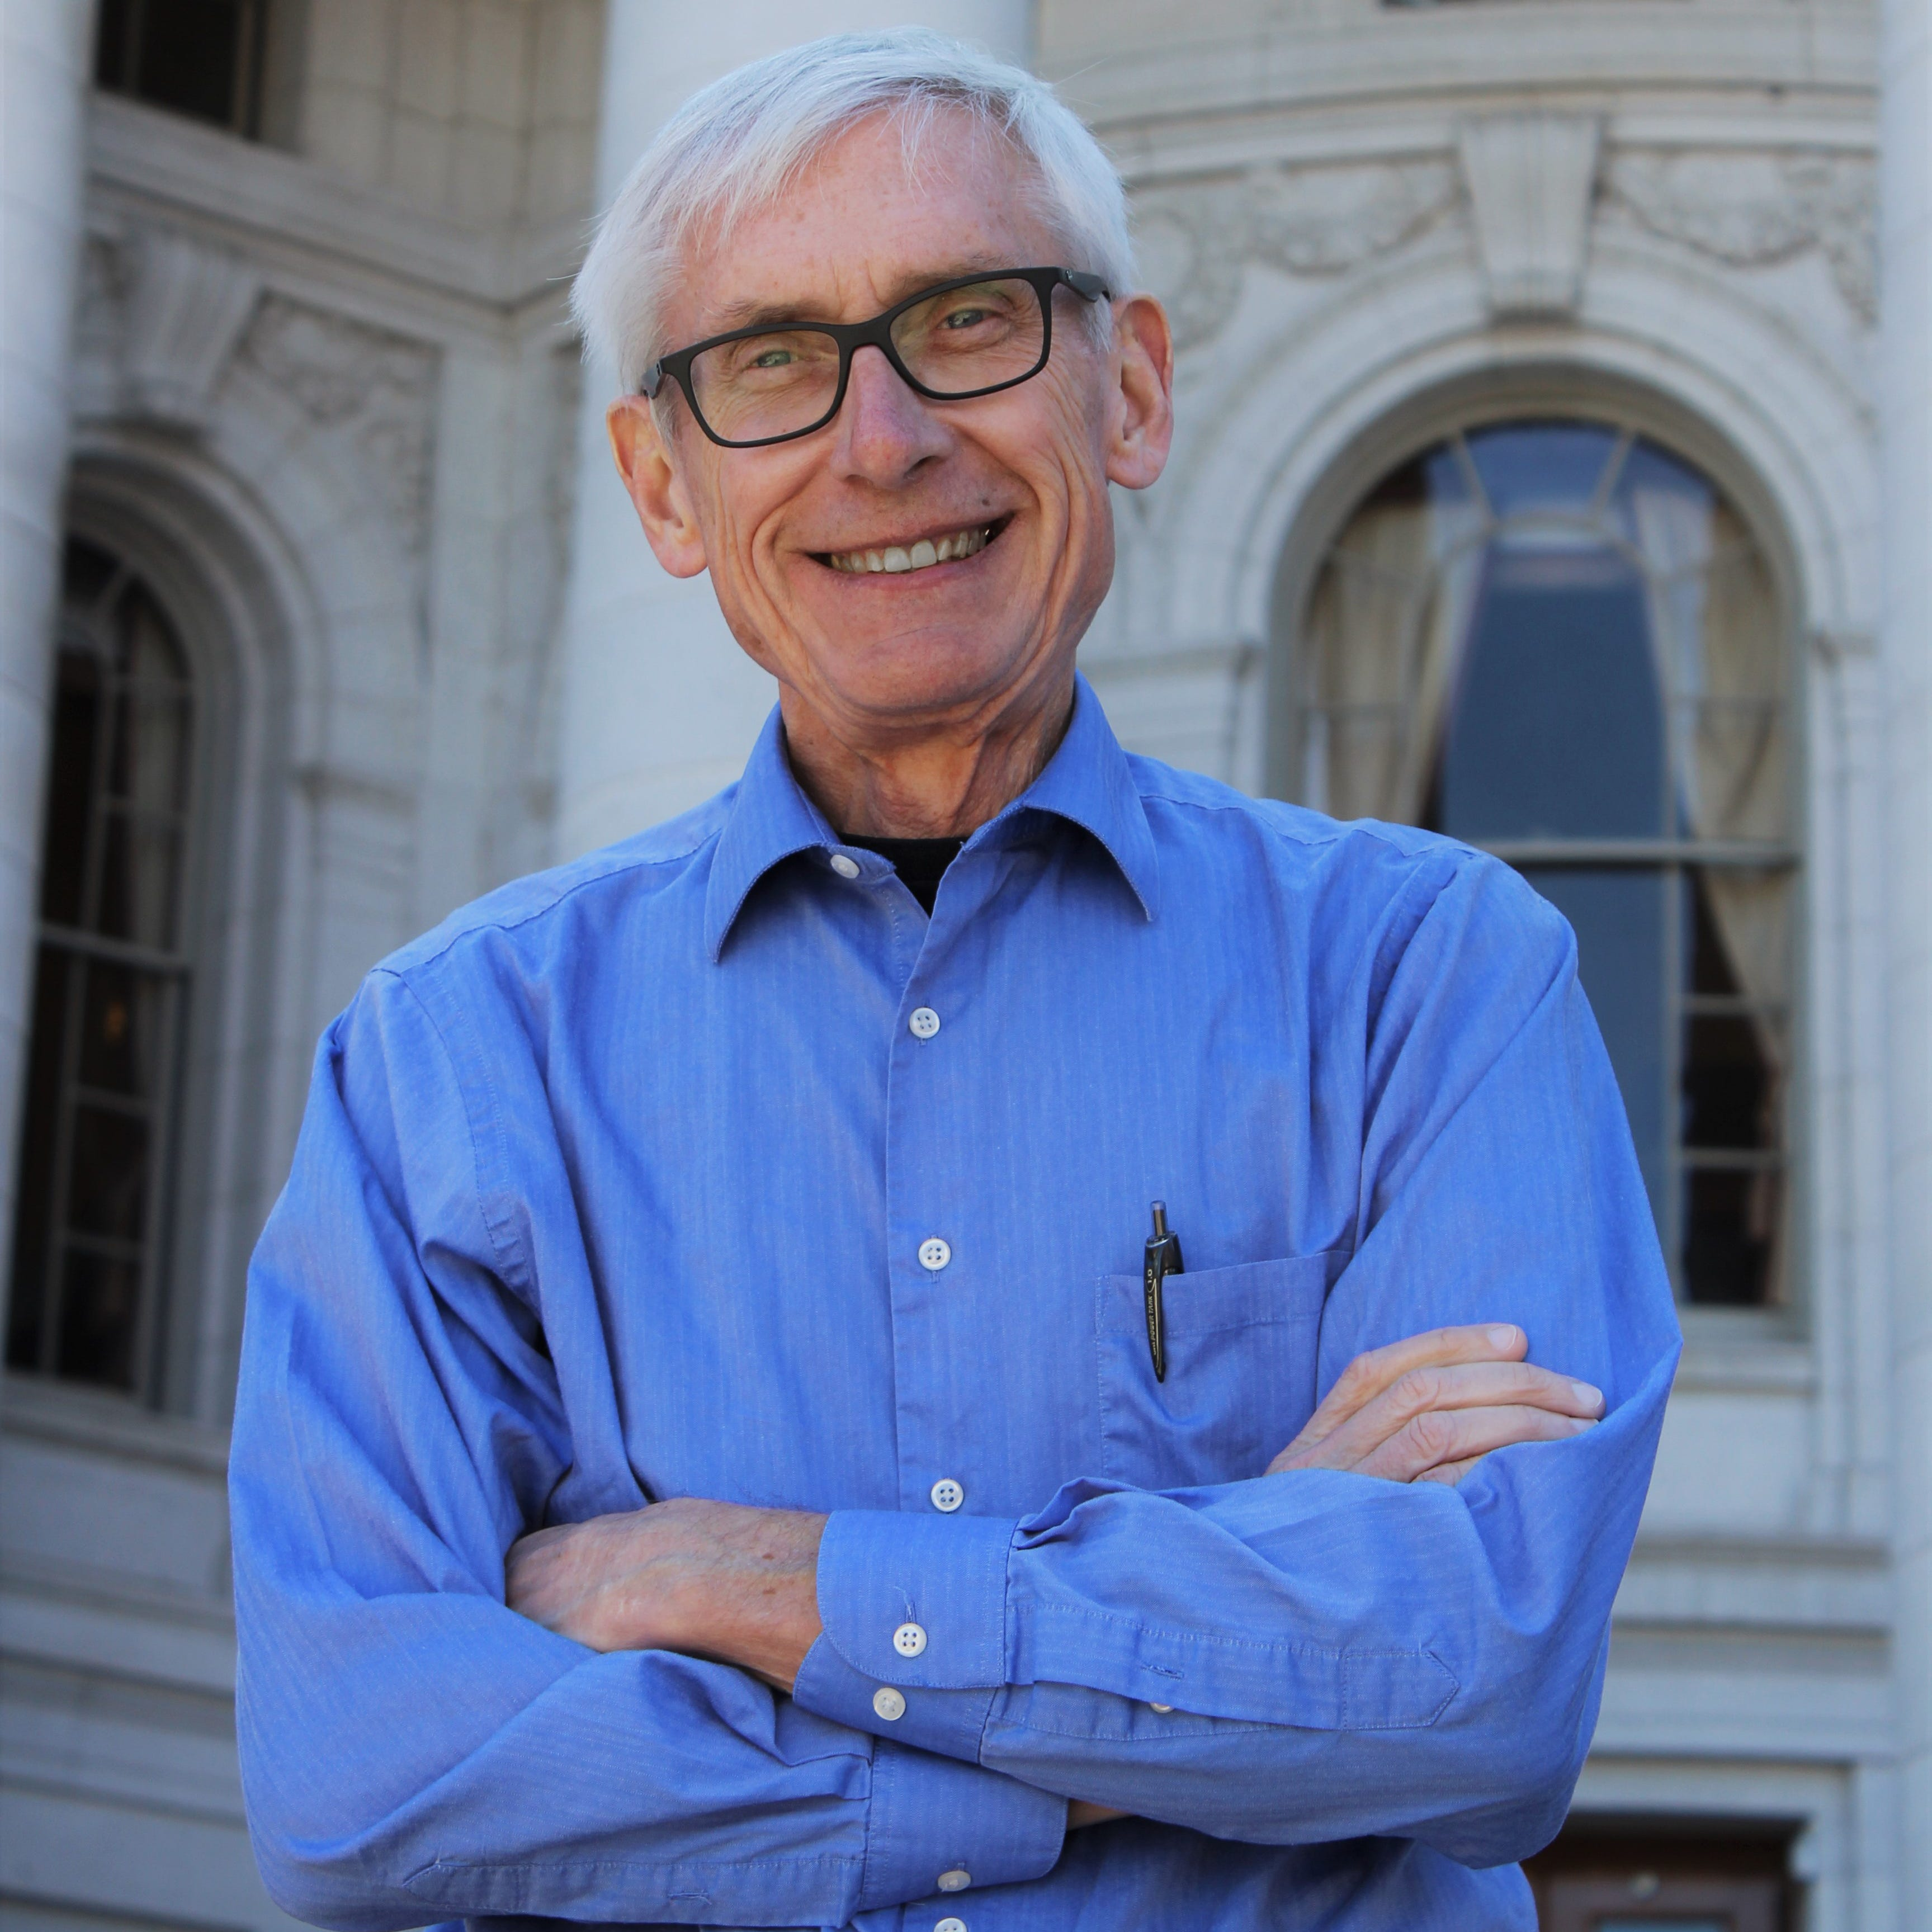 Tony Evers submitted budget request with plagiarized sections, raising new issue in governor's race